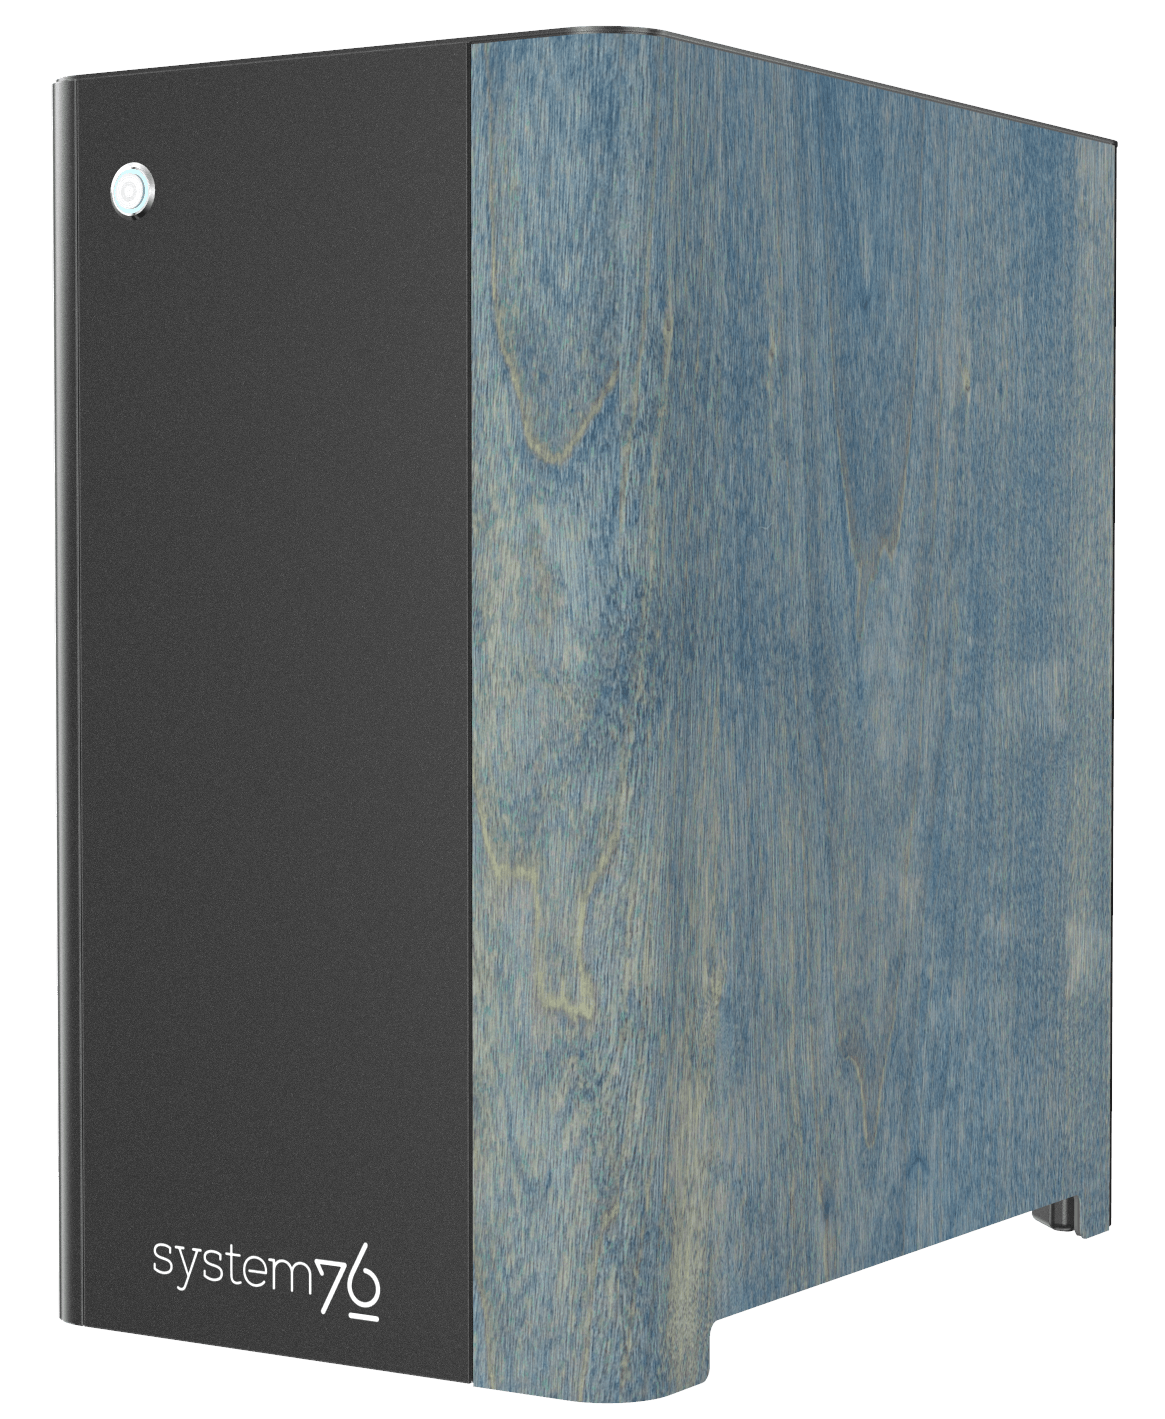 Side view of Thelio Major's Neptune Blue-stained birch wood veneer.